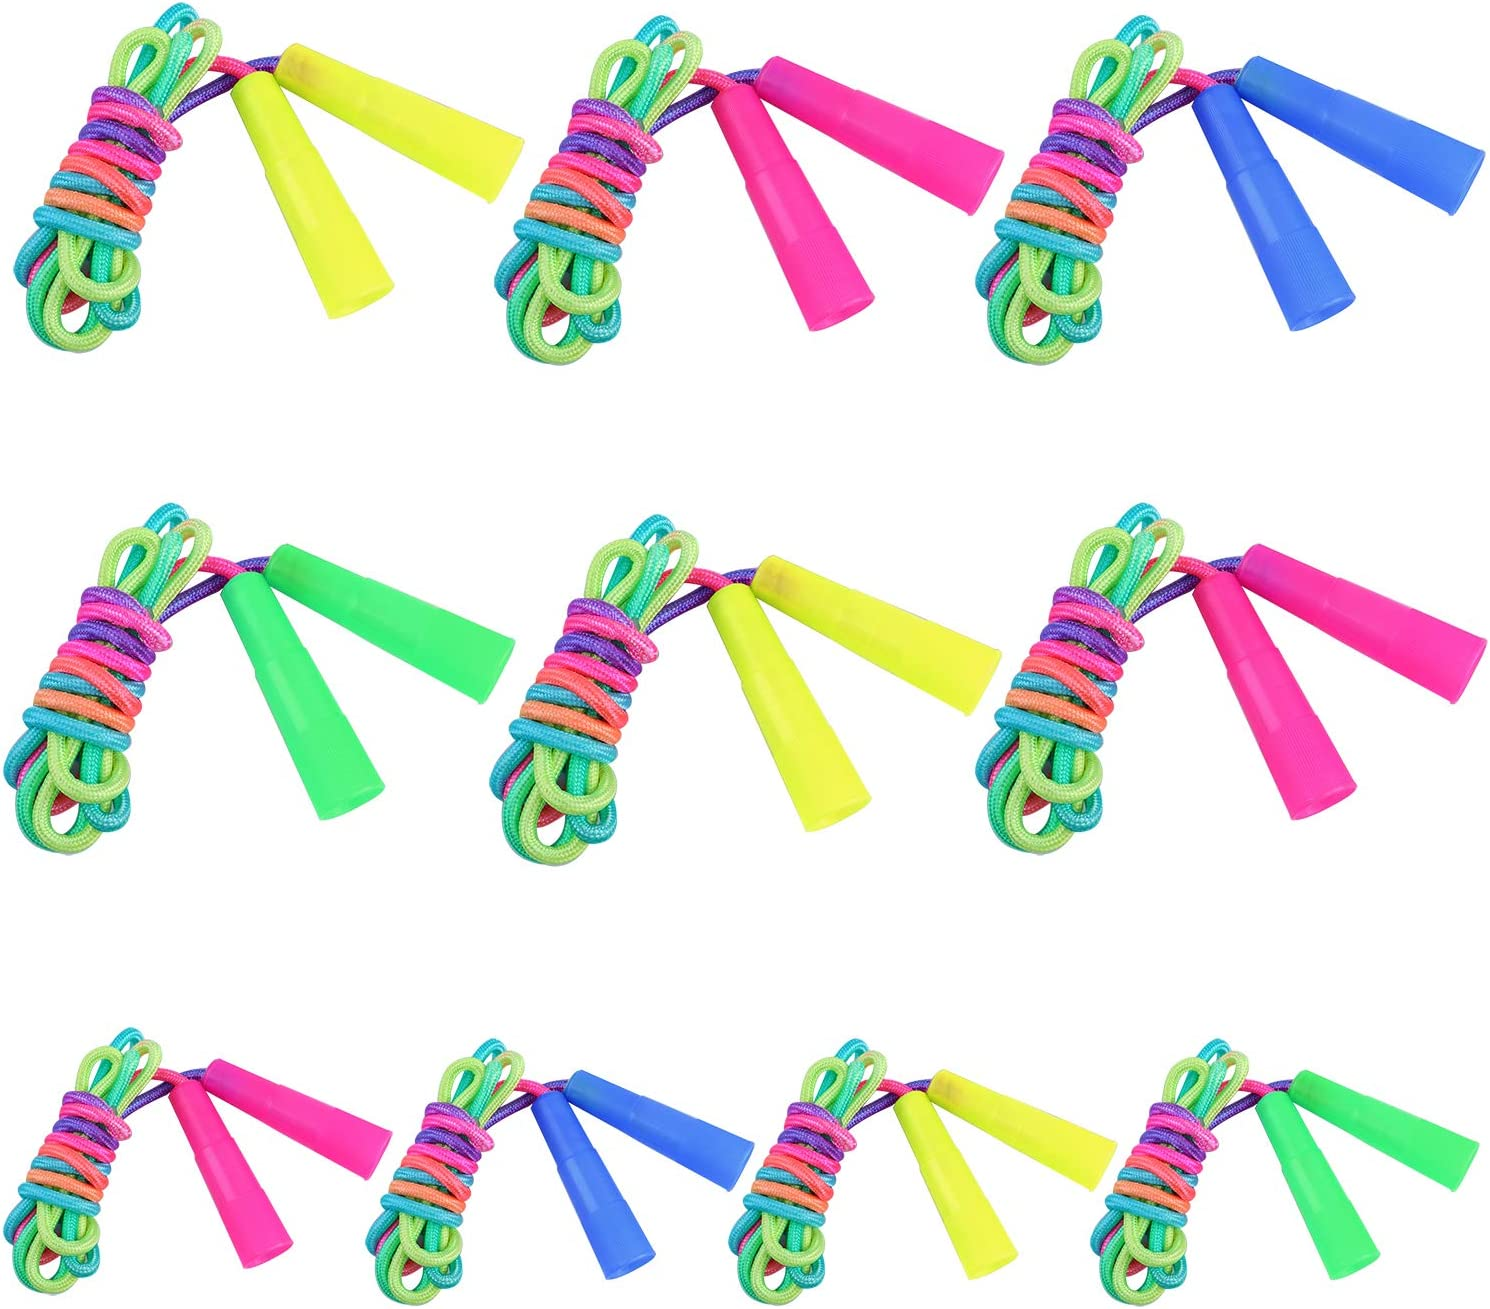 Aneco 7.2 Feet 10 Pack Rainbow Jump Rope Set Jumping Ropes Vibrant Durable Nylon Skipping Ropes Great Birthday Party Favors Indoor and Outdoor Activities